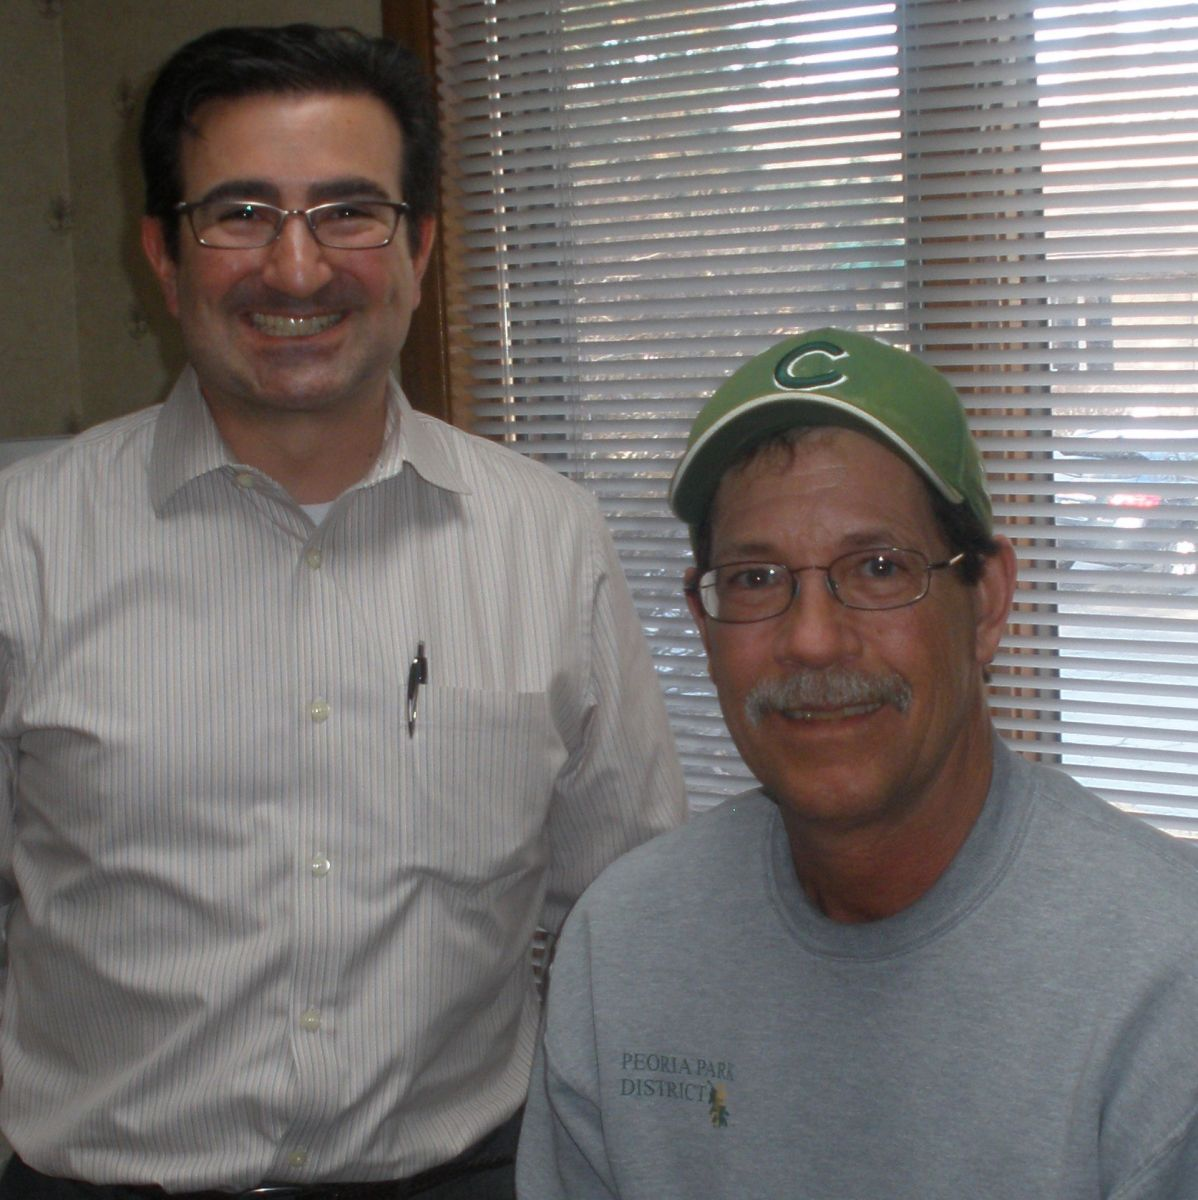 dr. sumer and patient smiling